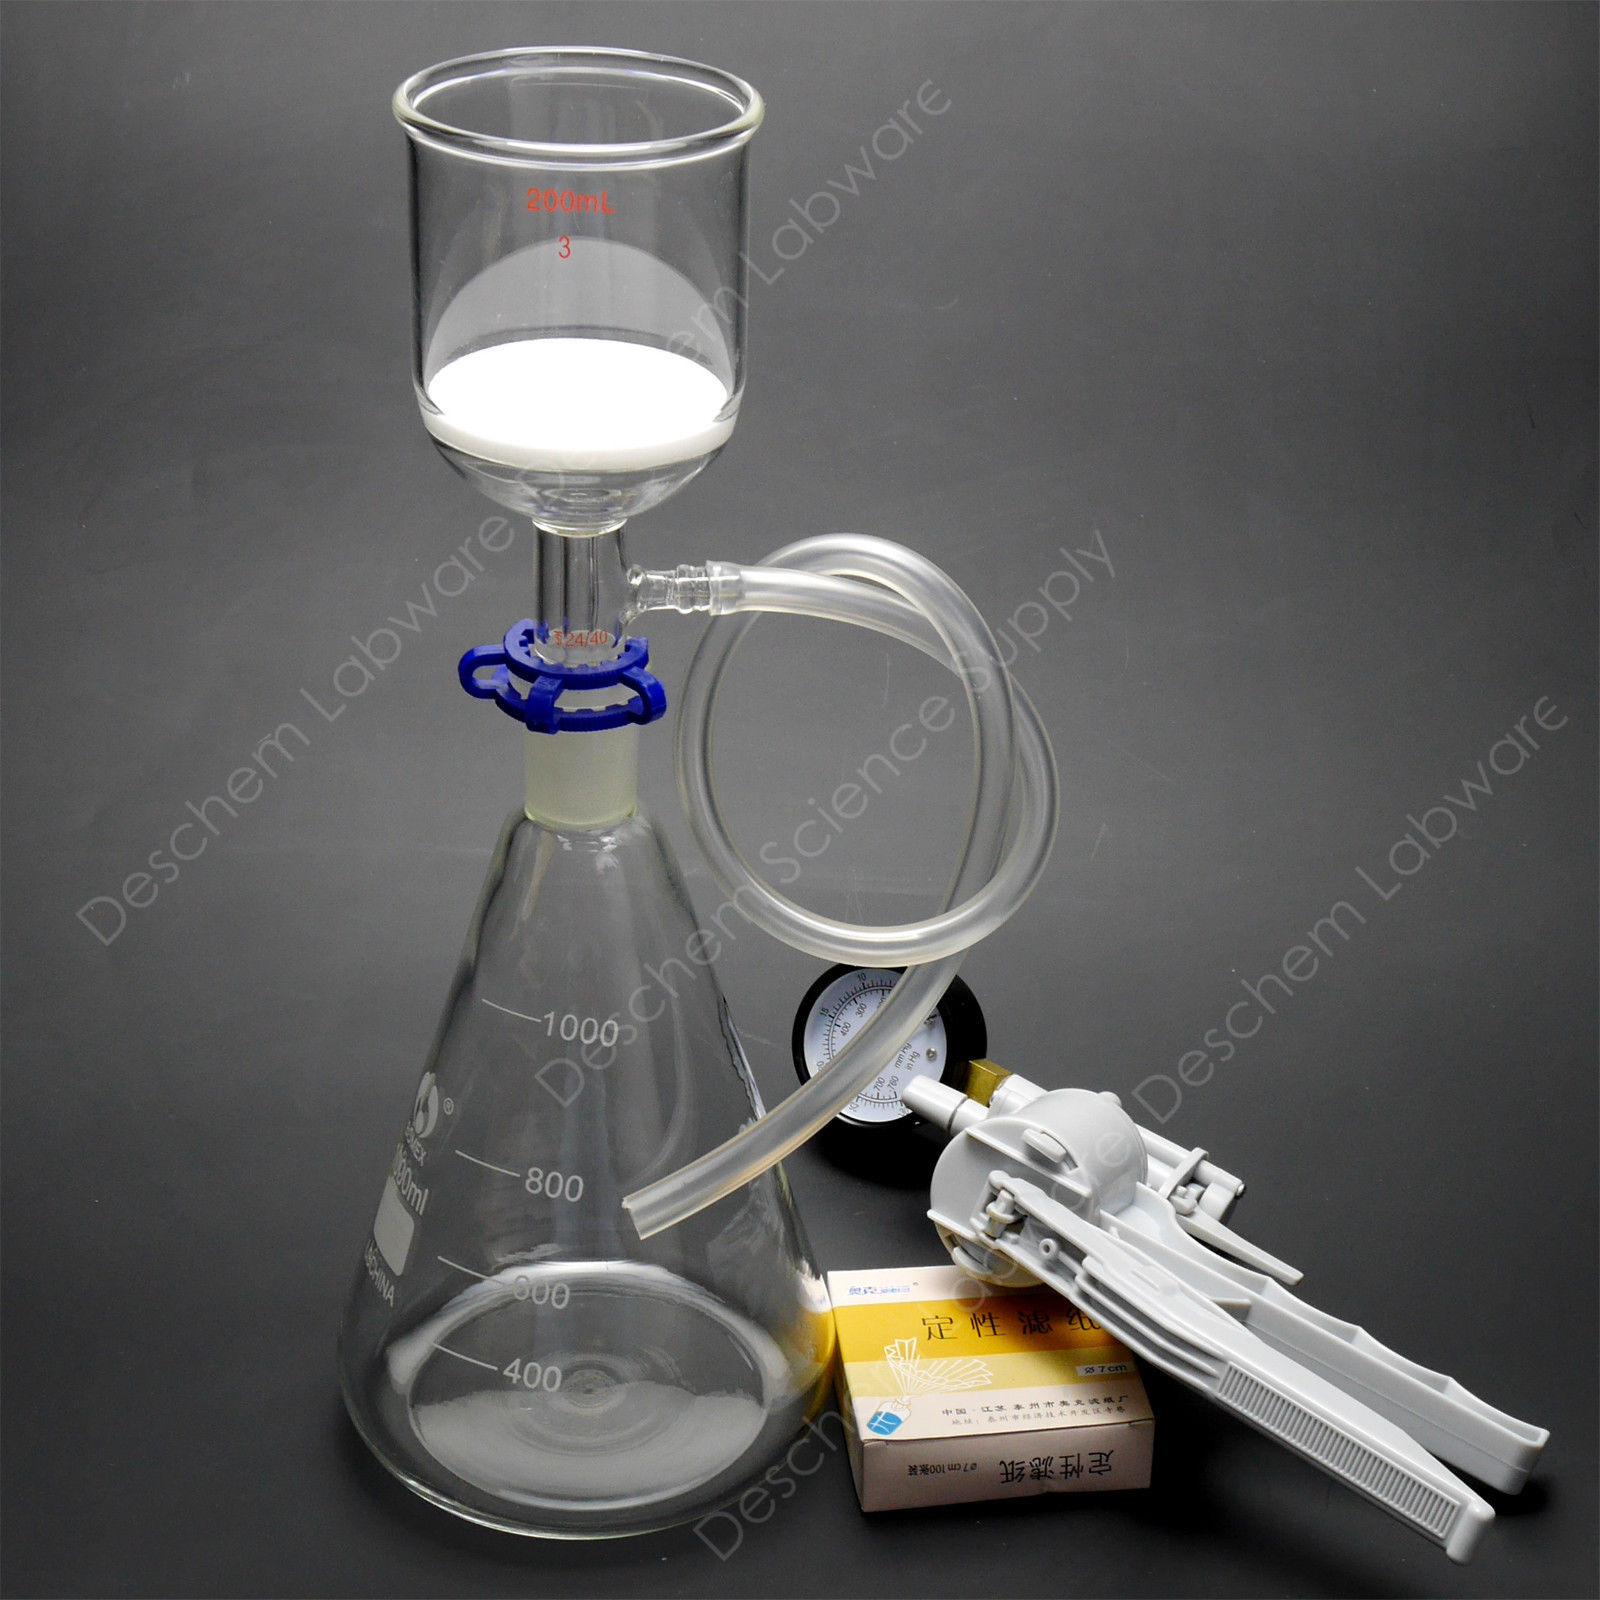 1000ml Lab Suction Apparatus 200ml Funnel 1L Flask W Vacuum Pump Filter Paper